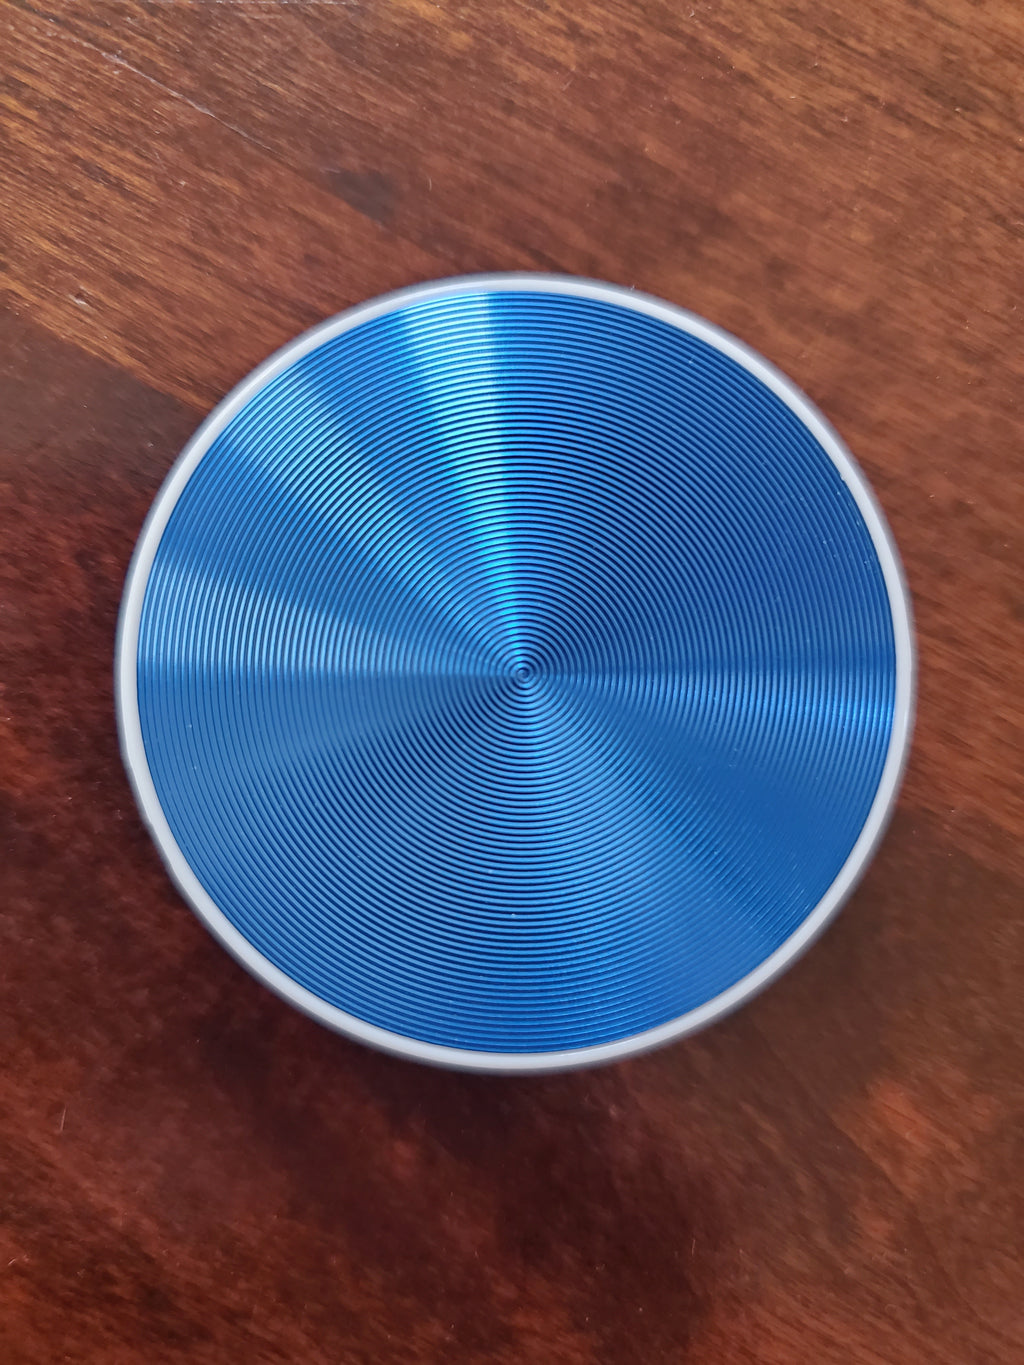 Blue Reflective Phone Socket